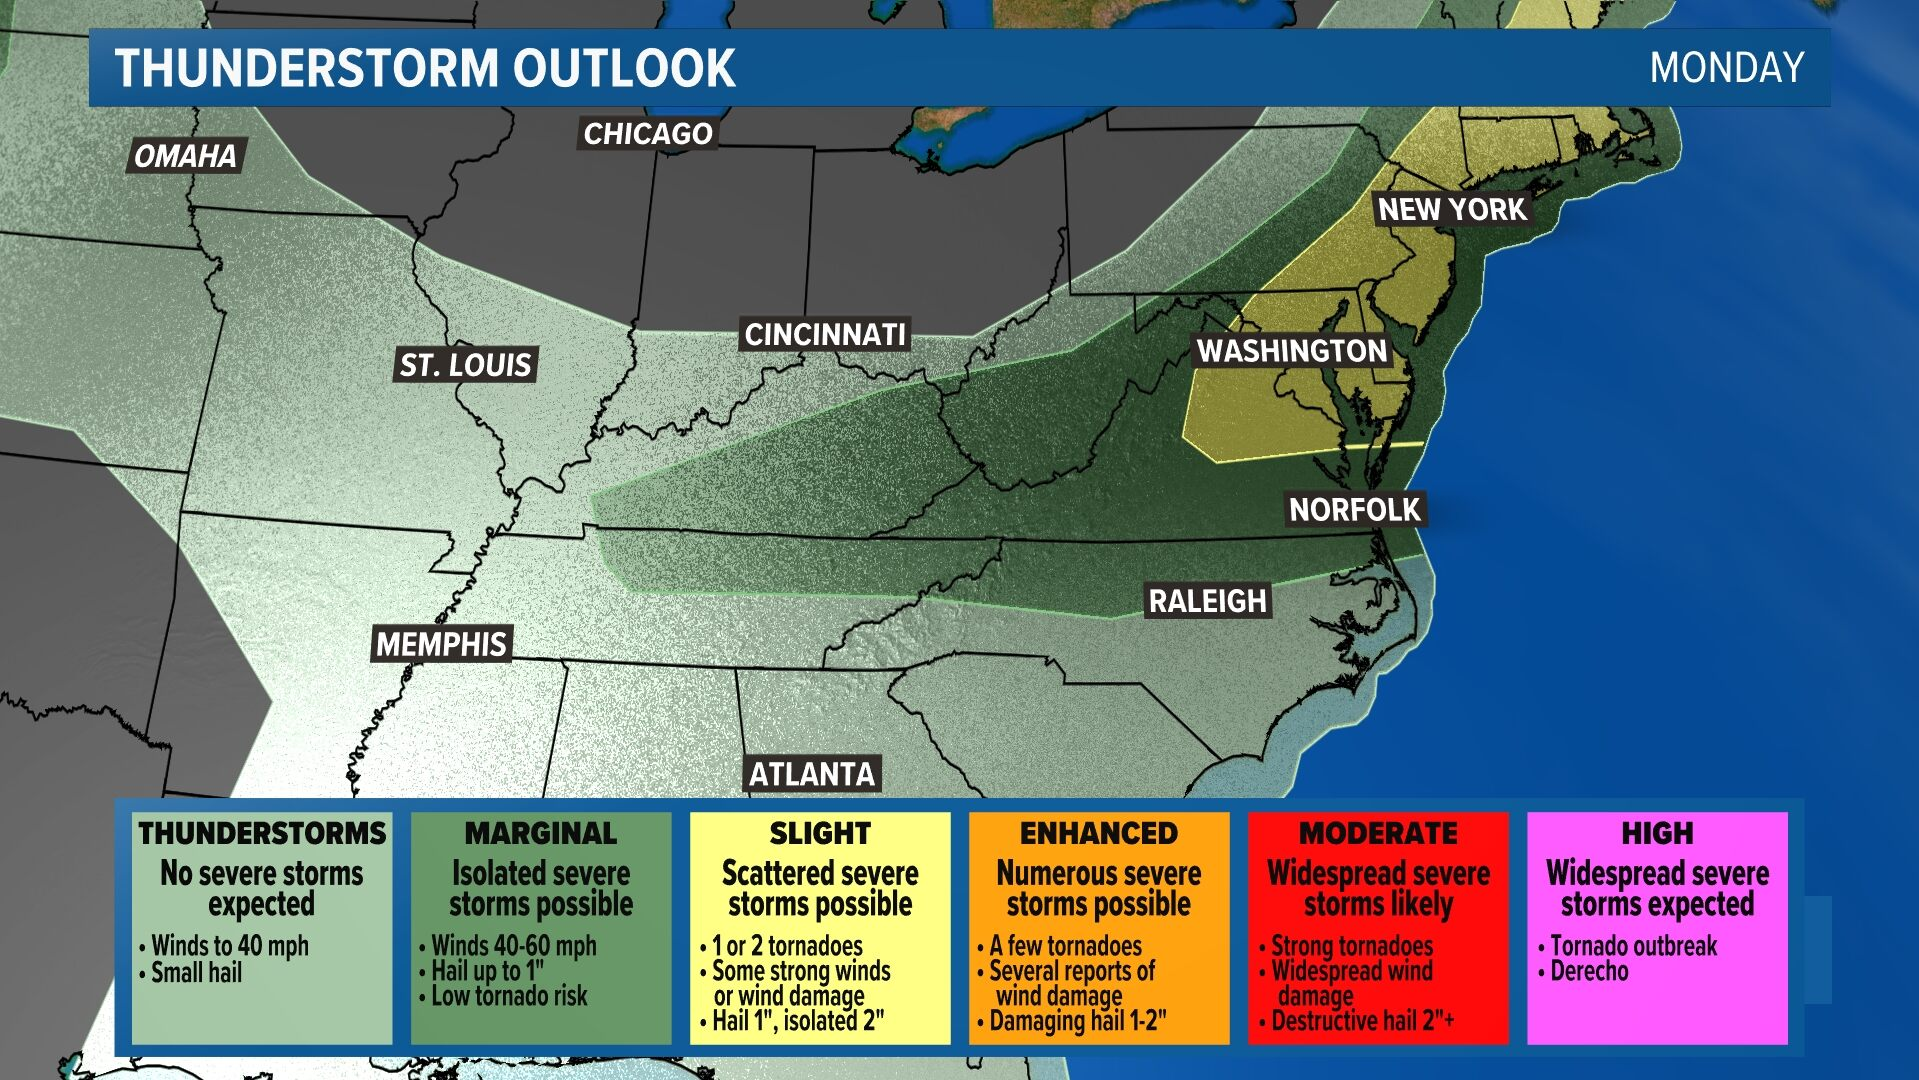 Severe Storm Outlook - Tomorrow